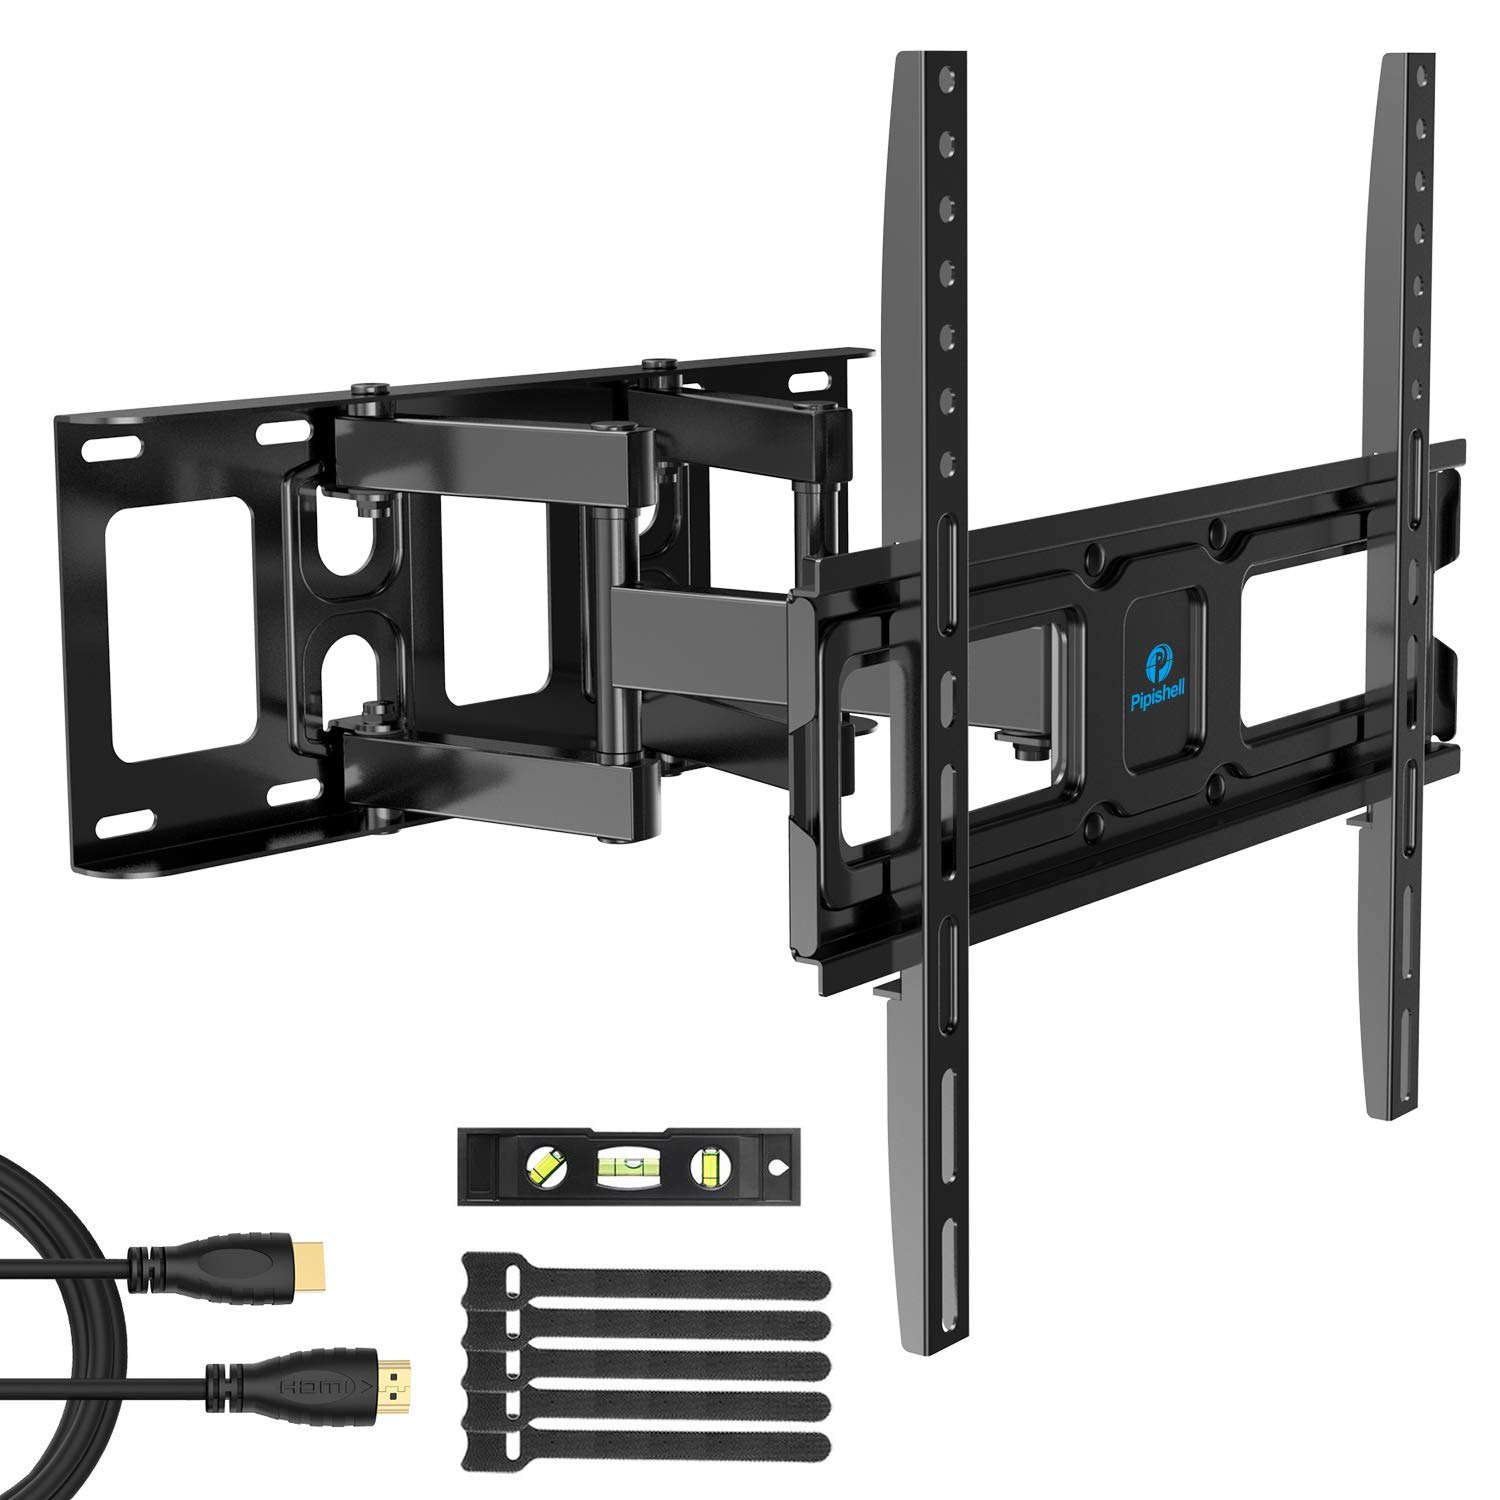 TV Wall Mount Bracket Full Motion Dual Swivel Articulating Arms Extension Tilt Rotation, Fits Most 26-55 Inch LED, LCD, OLED Flat&Curved TVs, Max VESA 400x400mm and Holds up to 99lbs by Pipishell by Pipishell